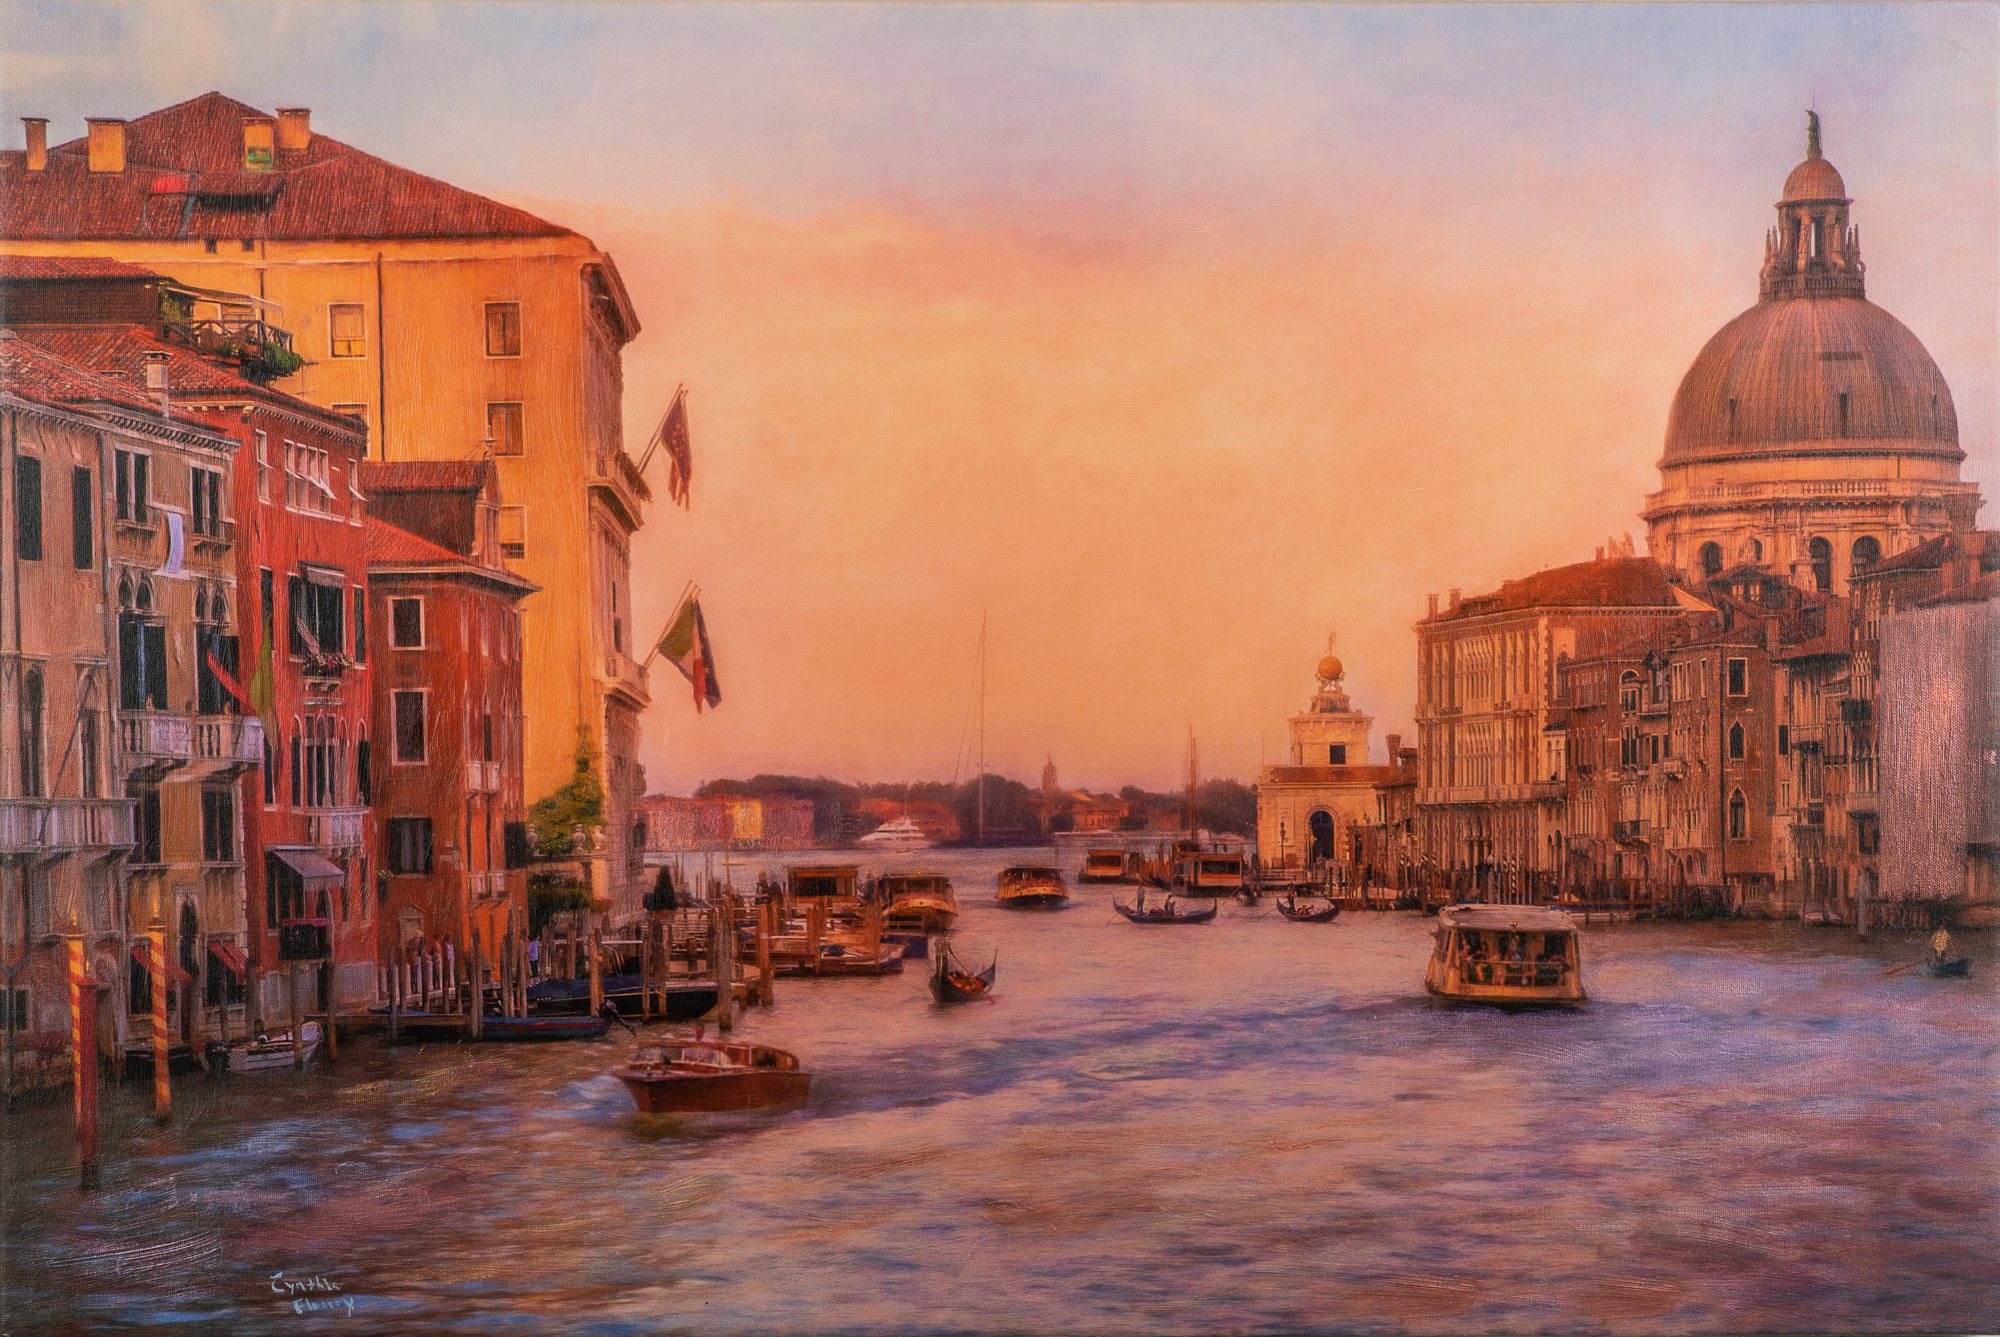 Sunset on the grand canal tlrita